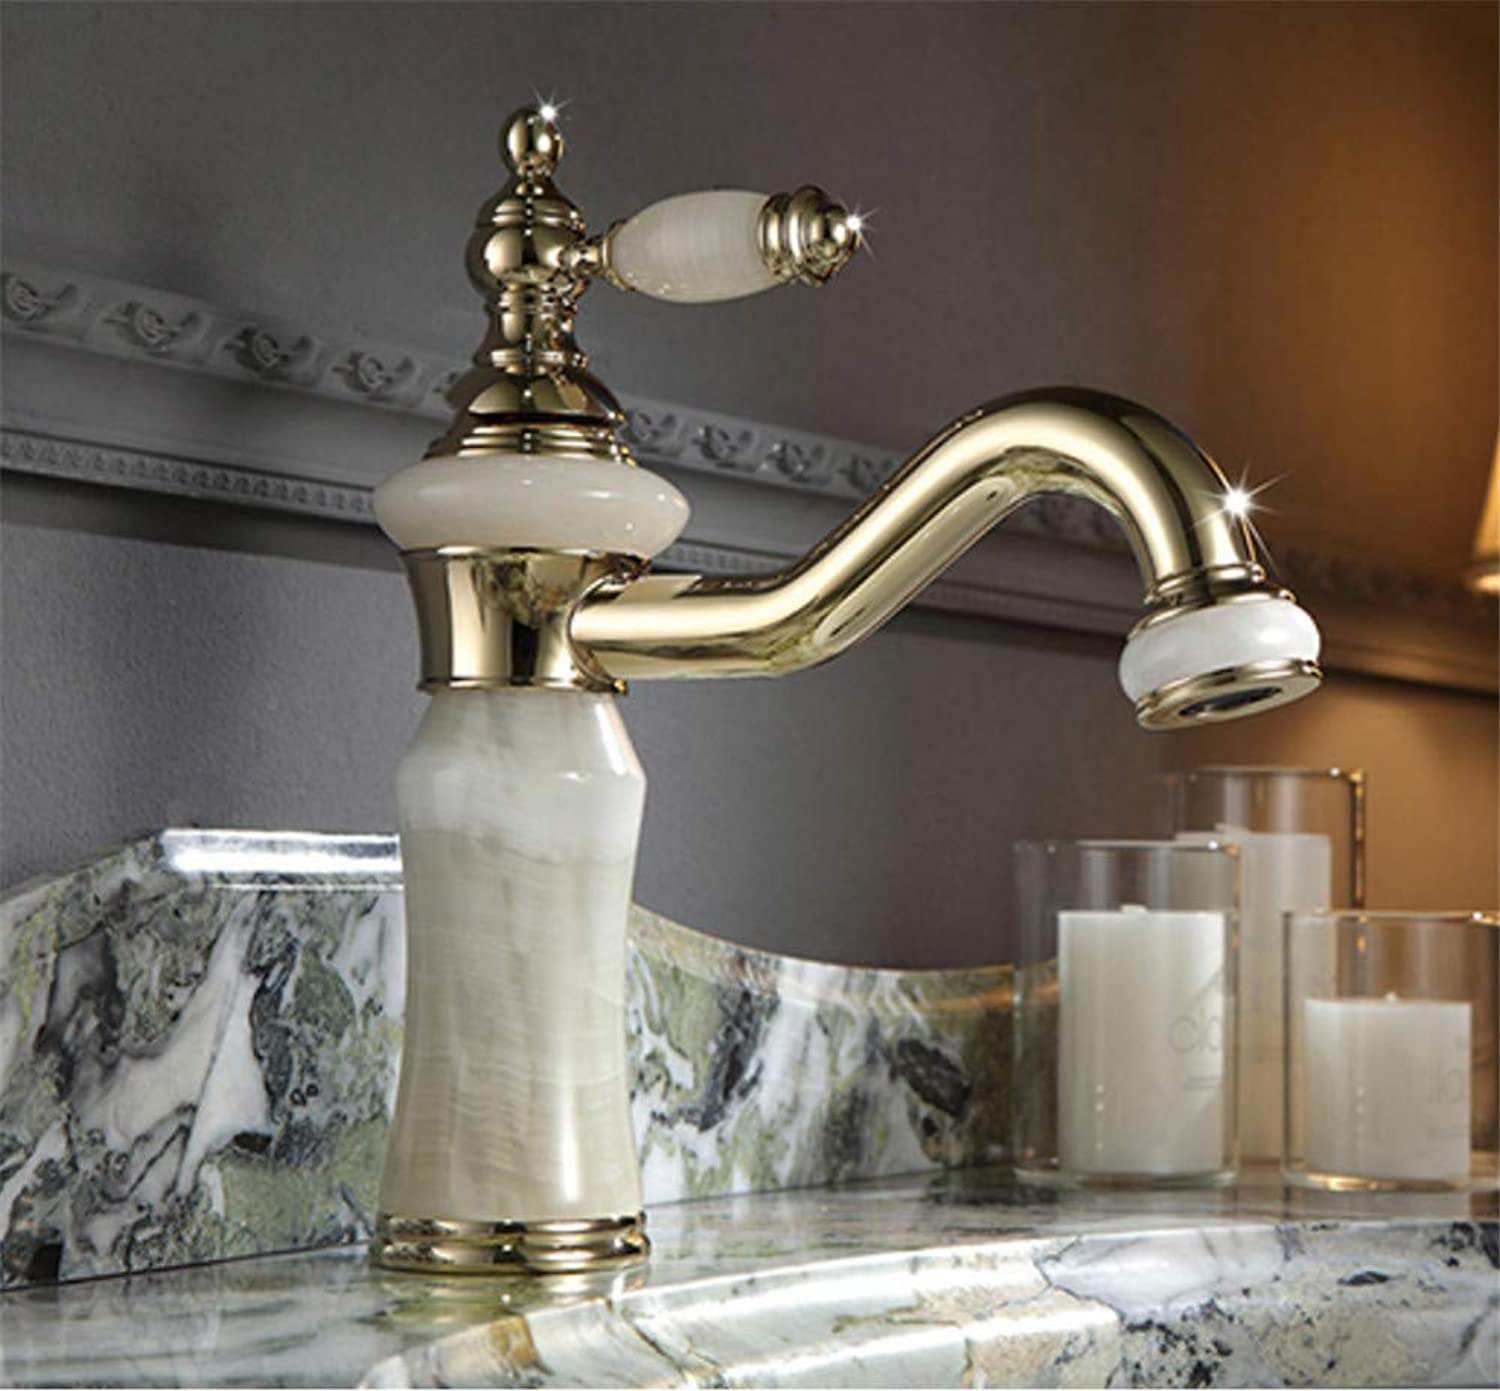 redOOY European golden Faucet Basin Hot and Cold Marble Basin Faucet Copper gold Marble Washbasin Faucet